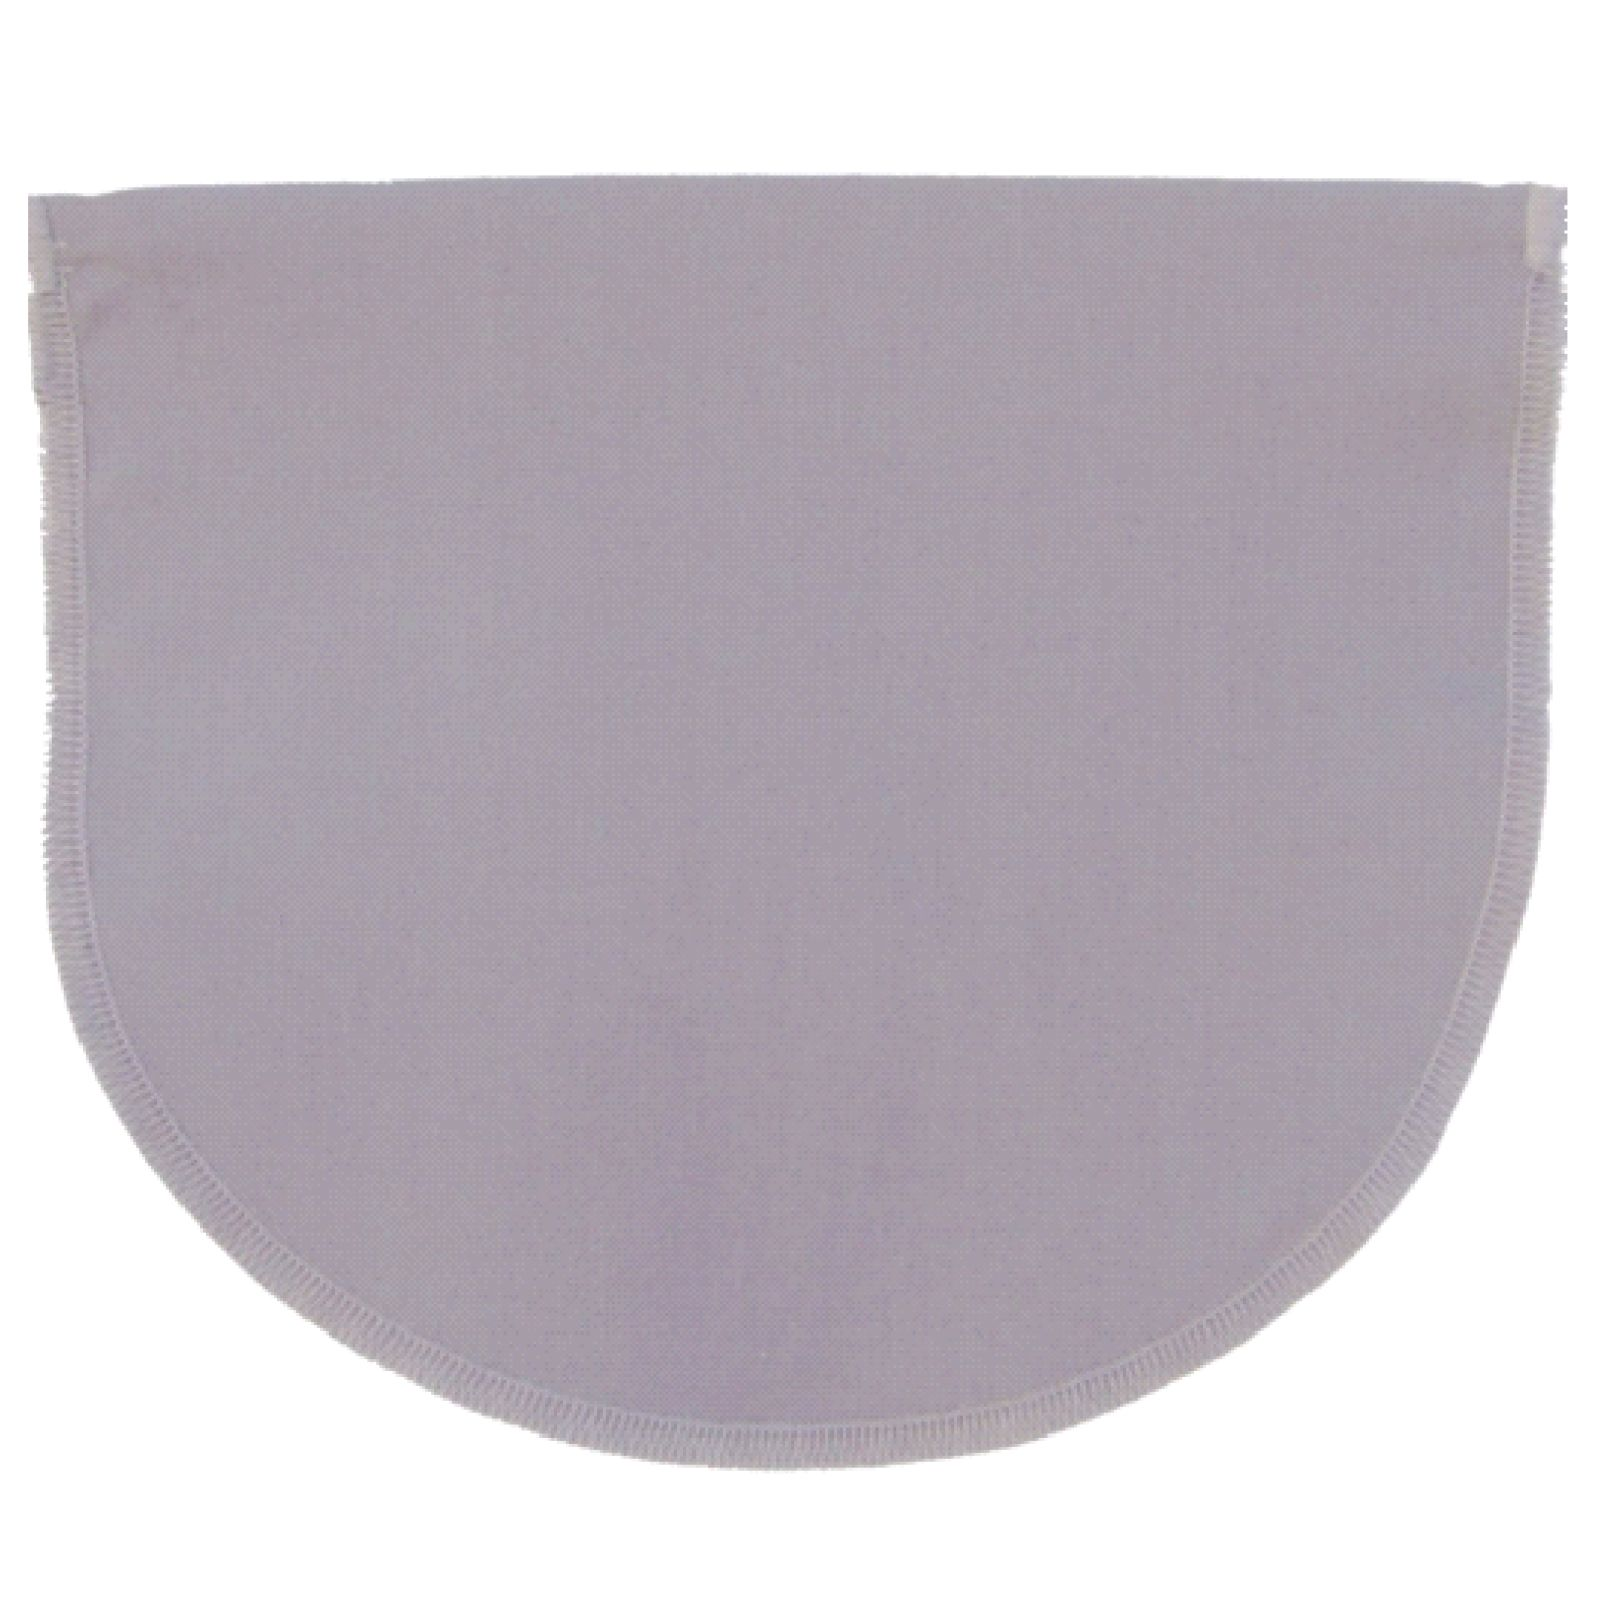 Grey Cotton Cleavage Cover